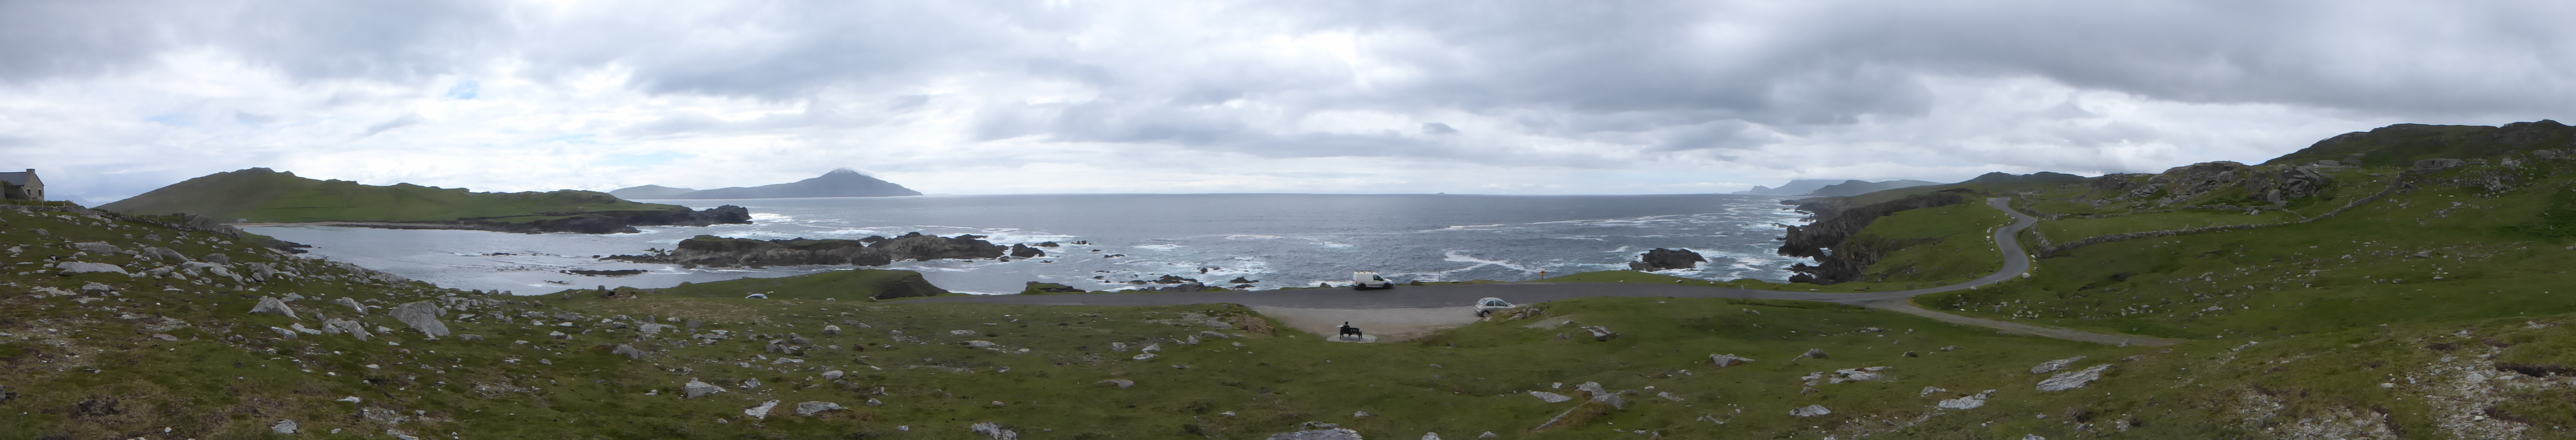 Panoramic_shot_-_south_coast_of_Achill_Island_.jpg